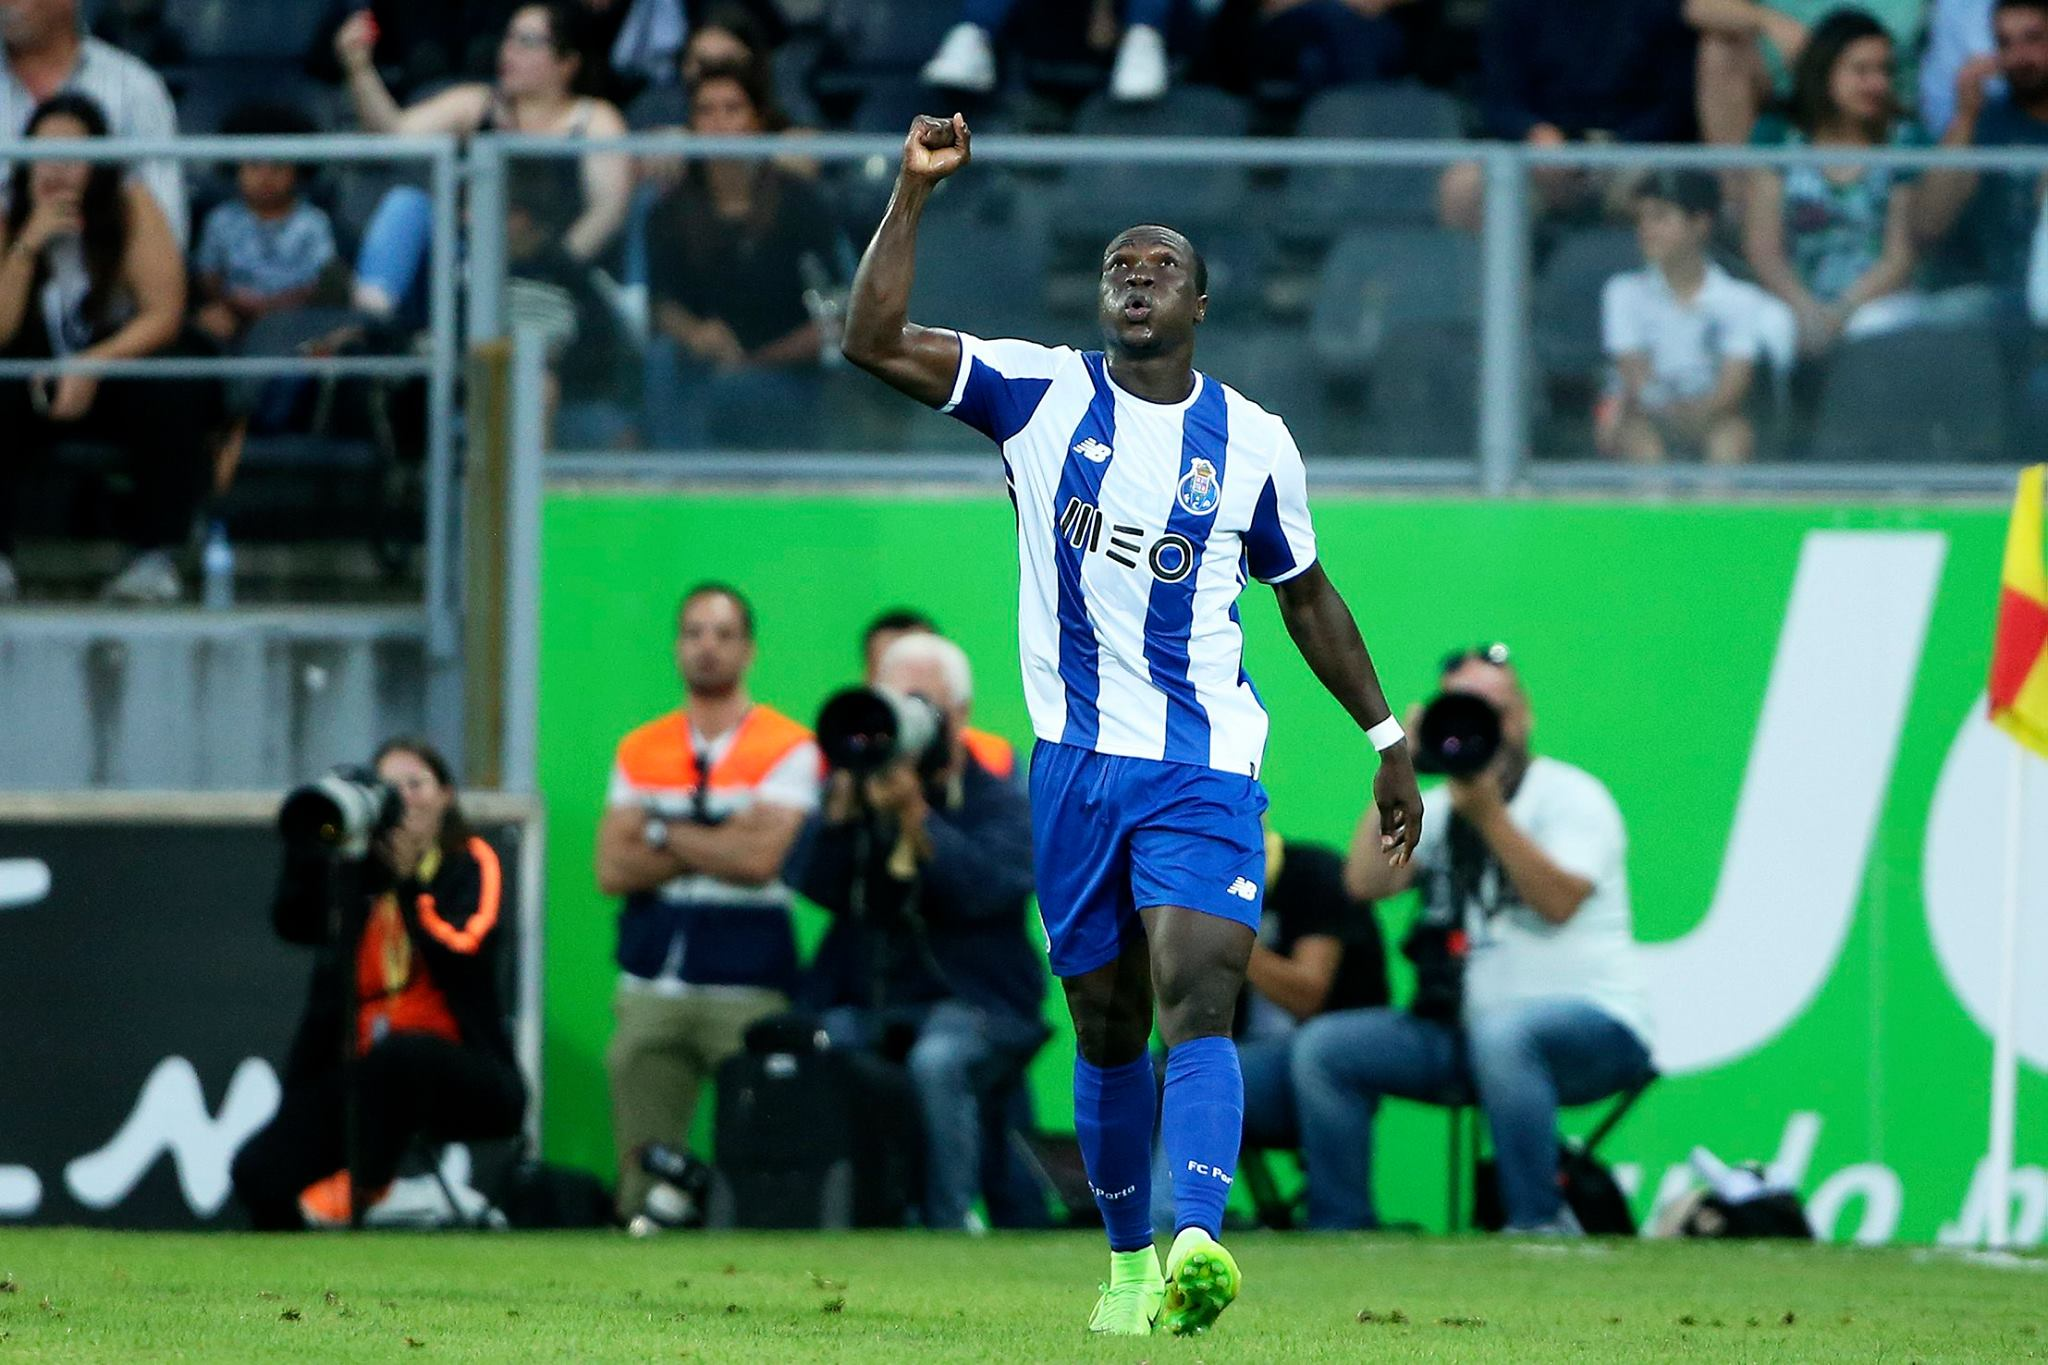 Coupe du portugal aboubakar buteur le fc porto domine - Coupe du portugal football ...